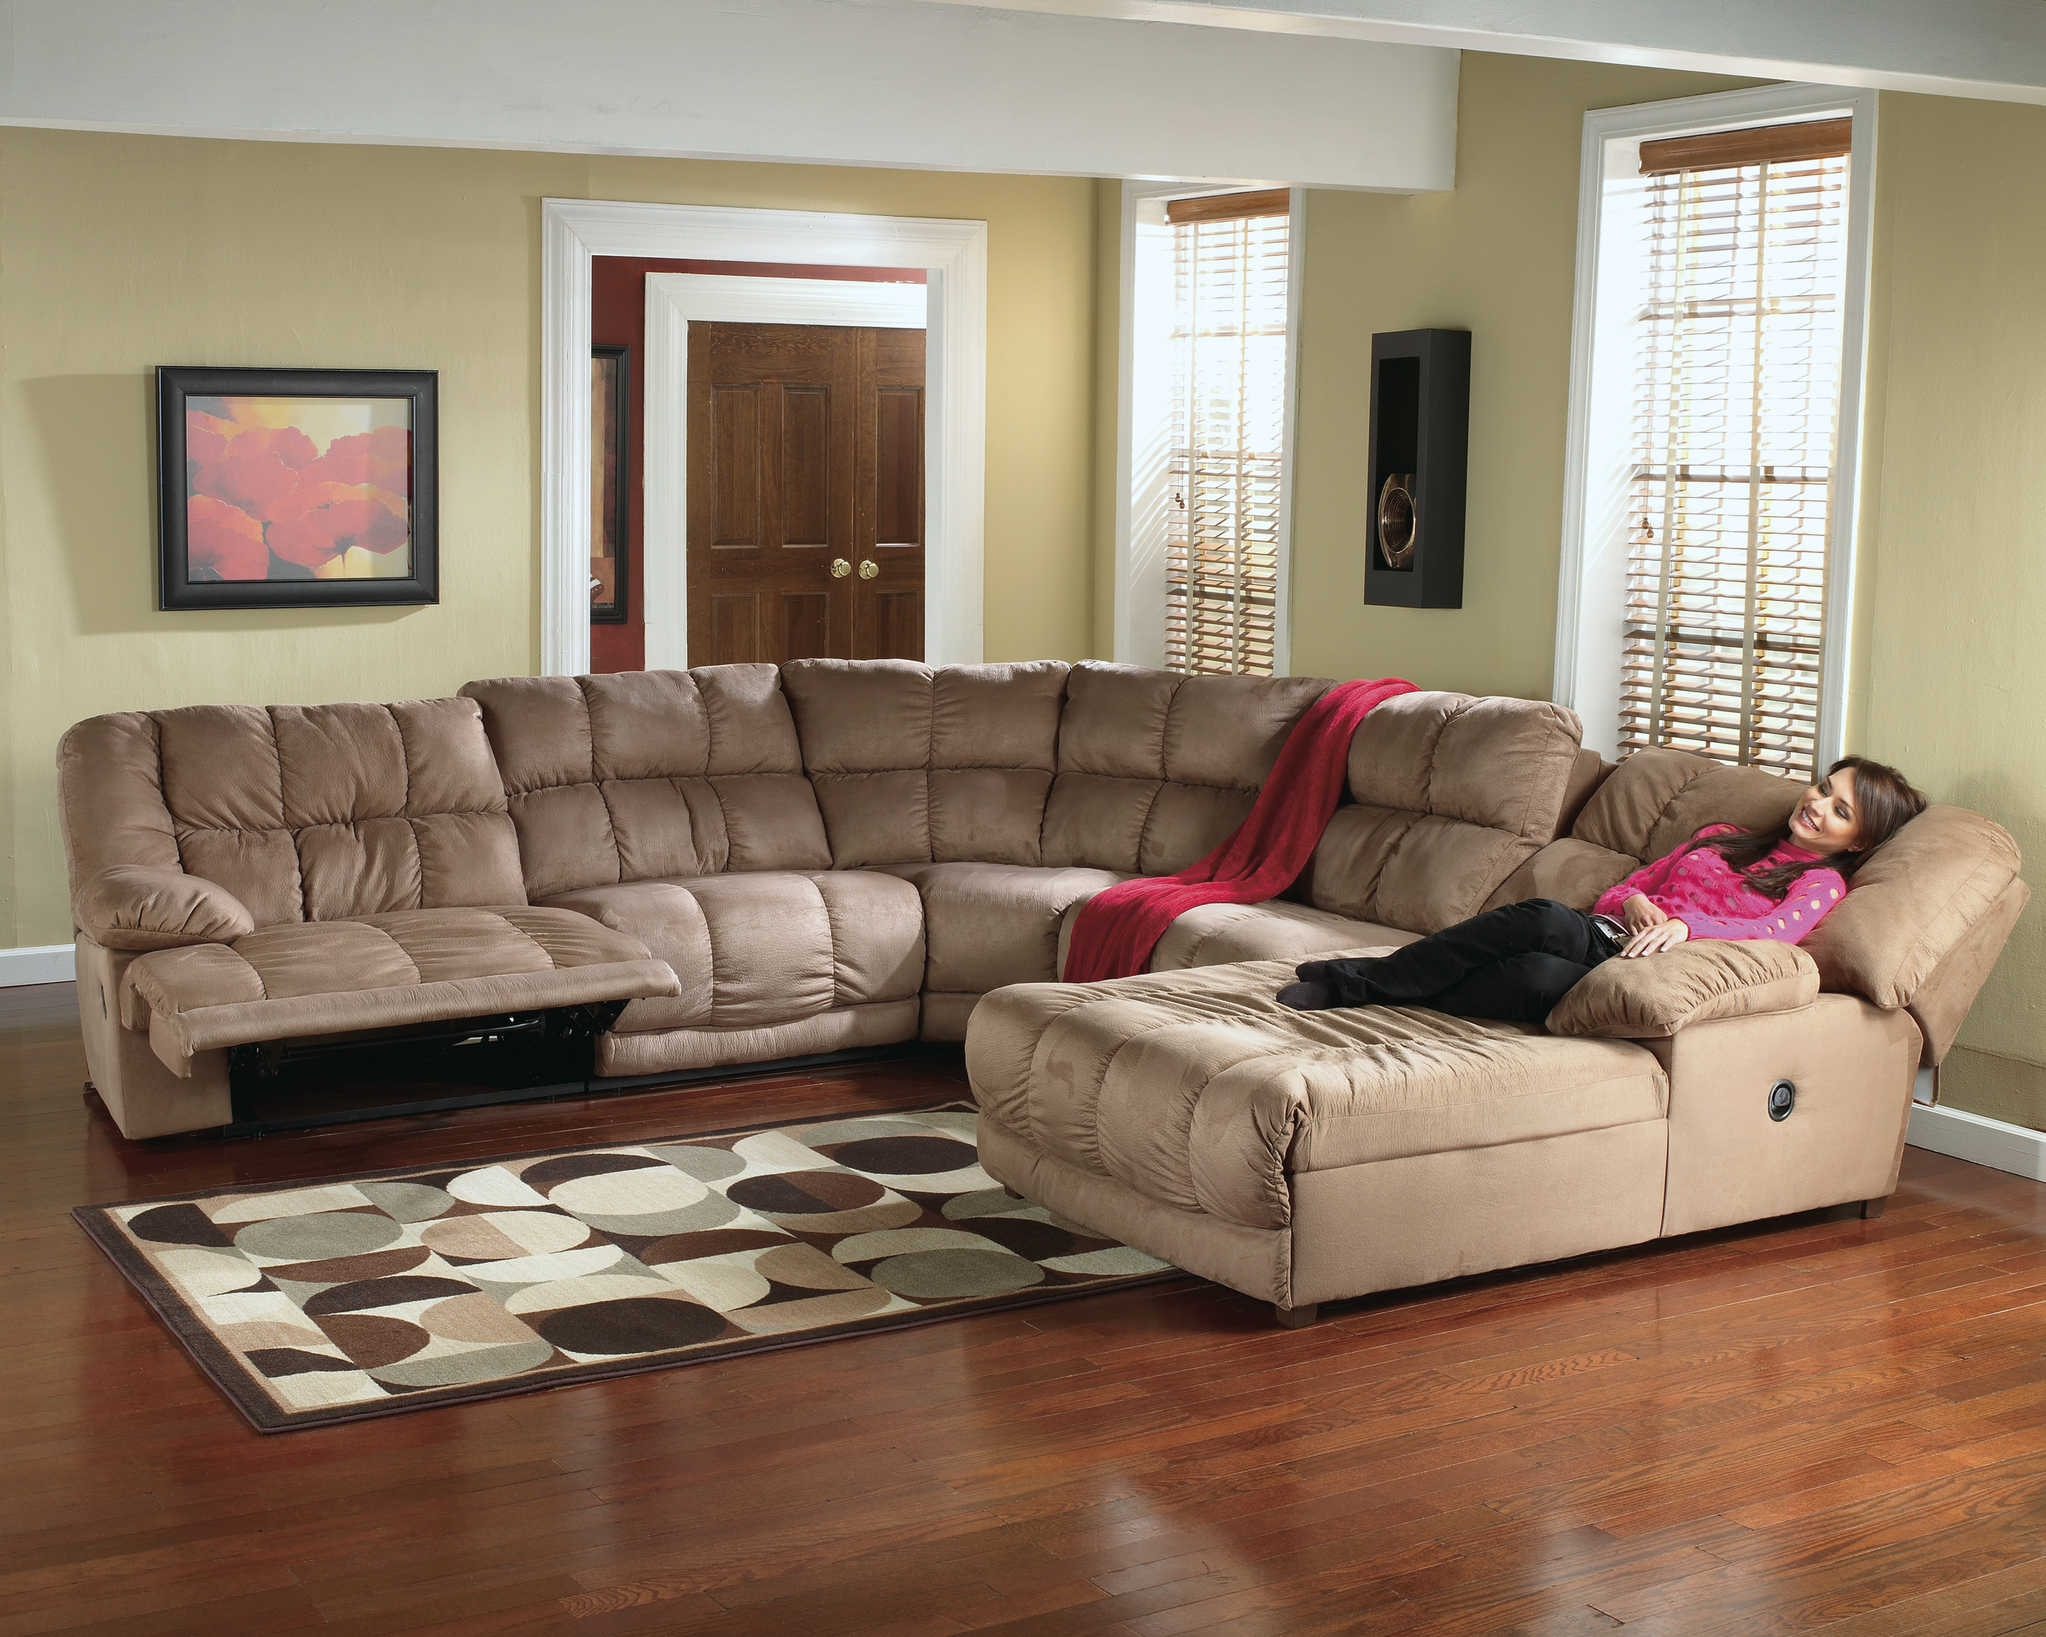 Sofa Durable Sectional Sofa 15 Of 15 Photos